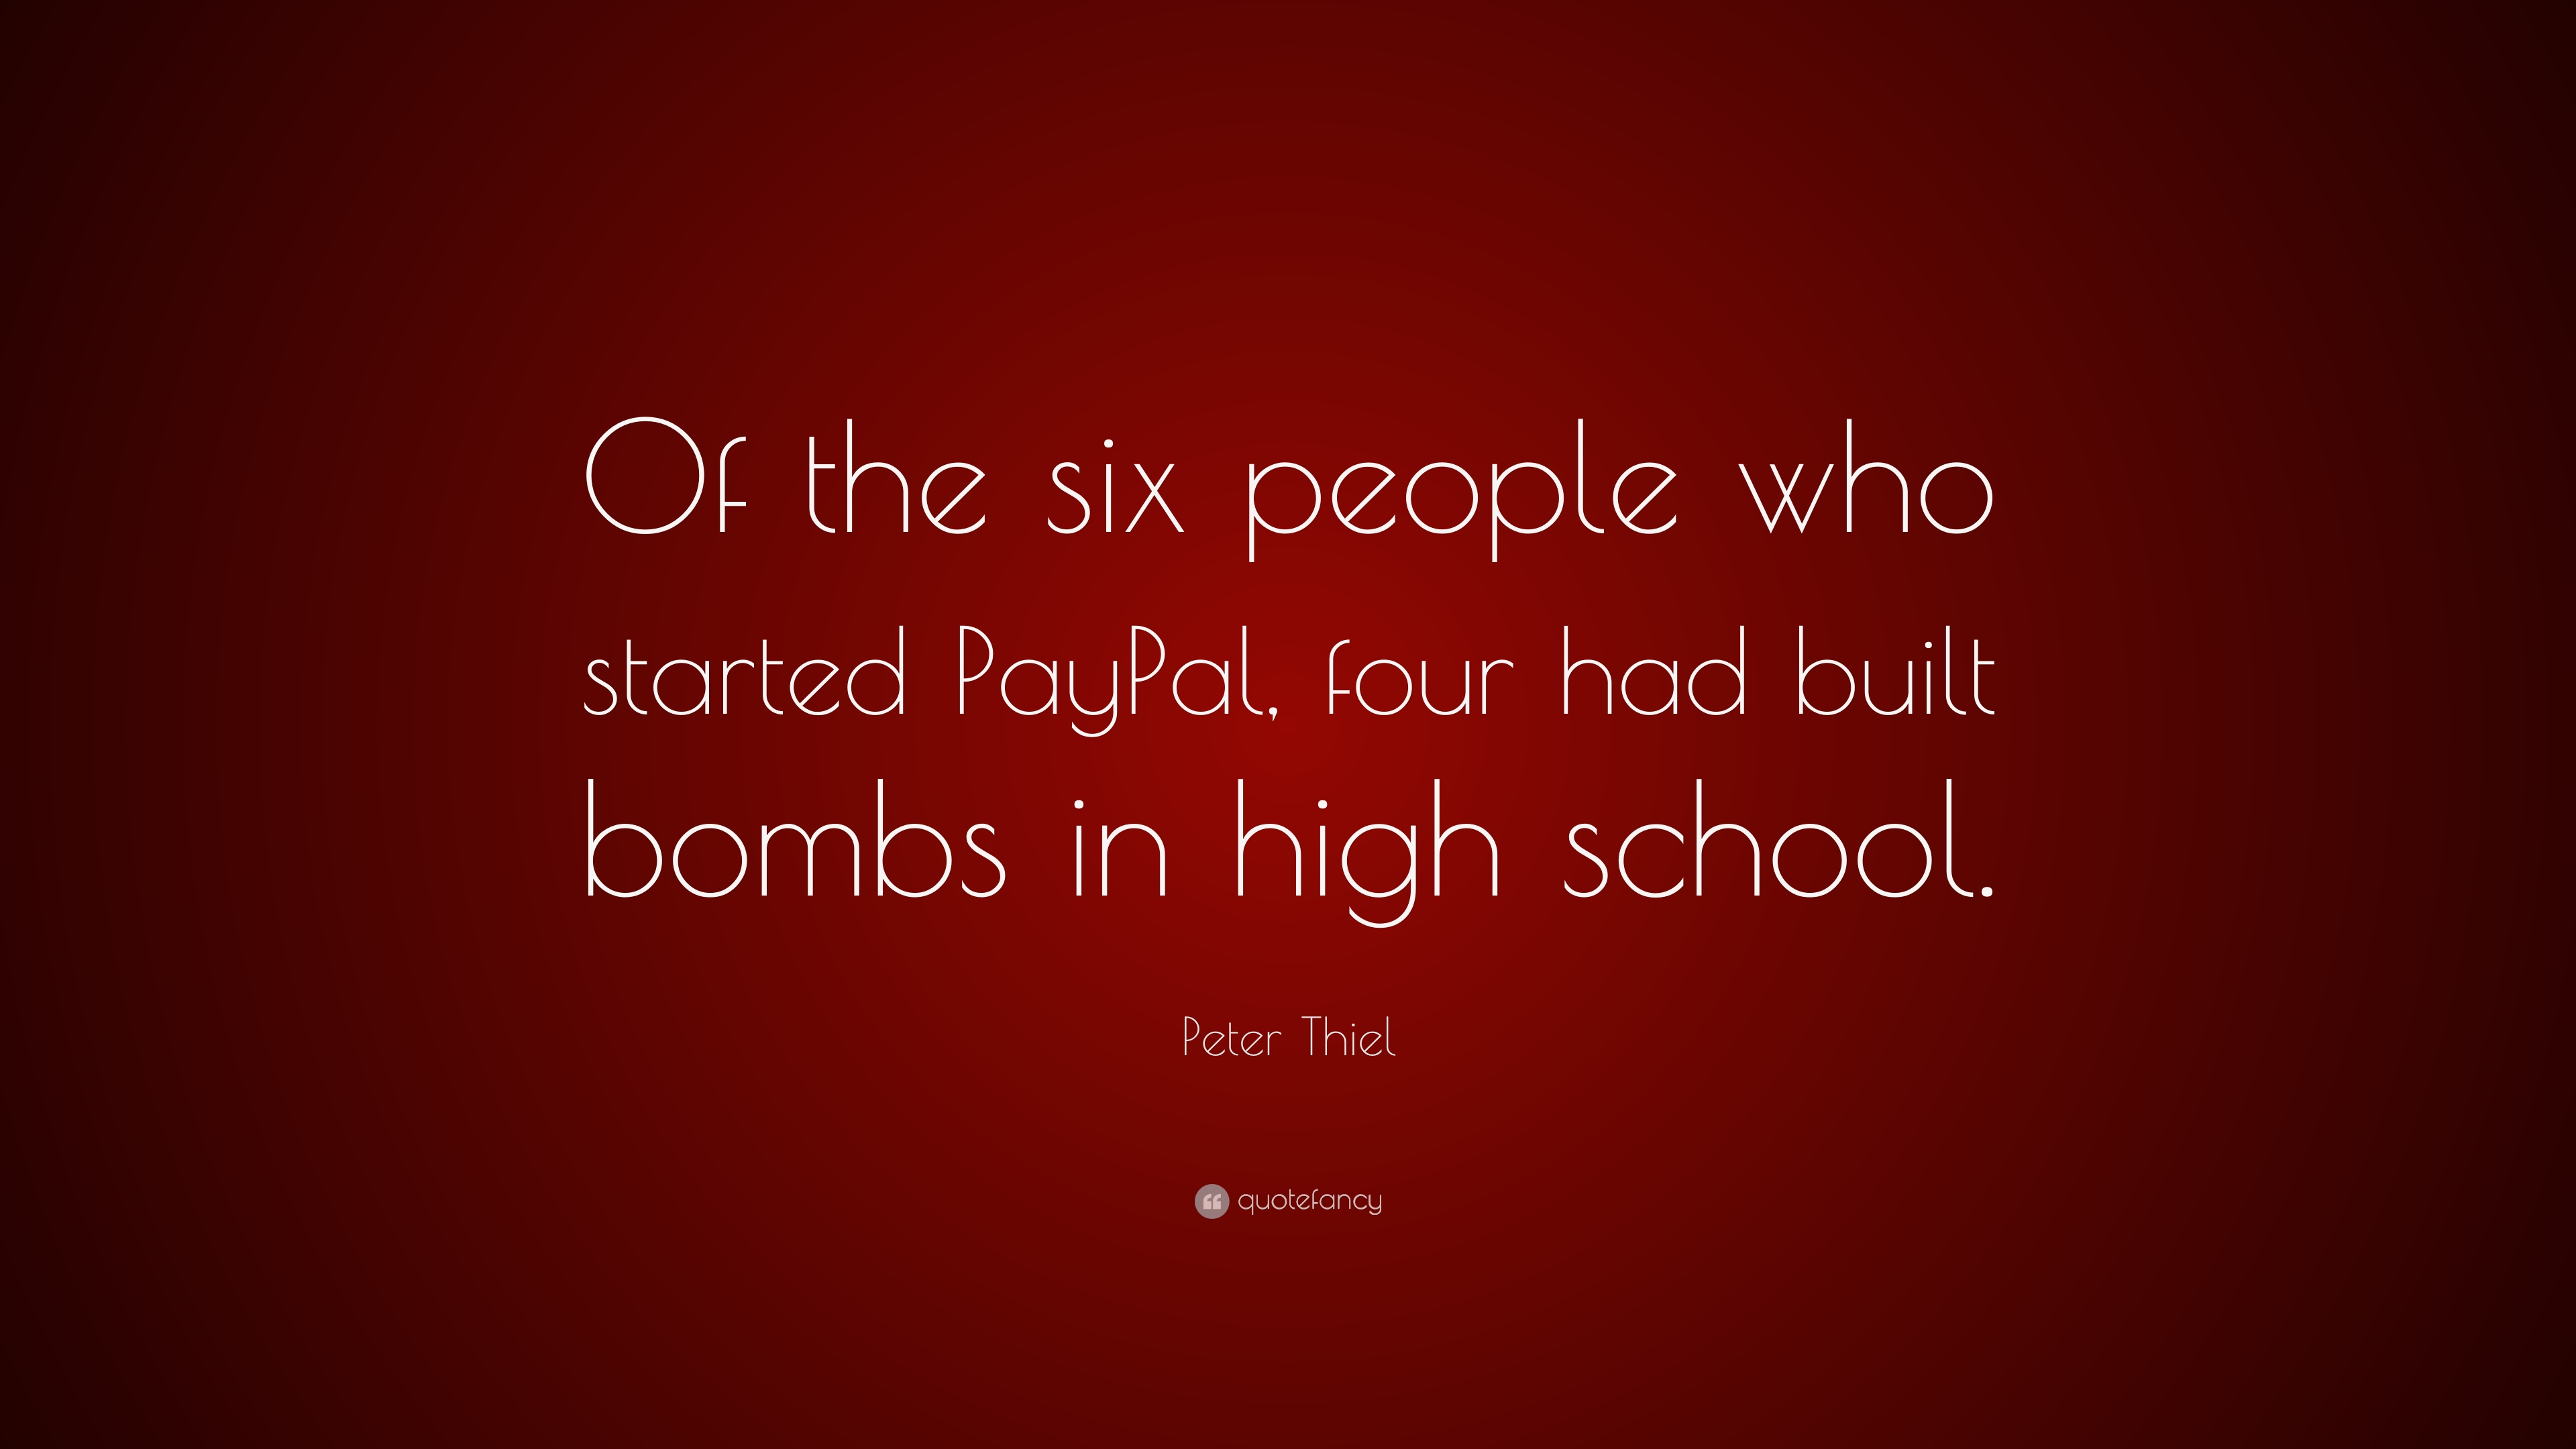 peter thiel quote of the six people who started paypal four had